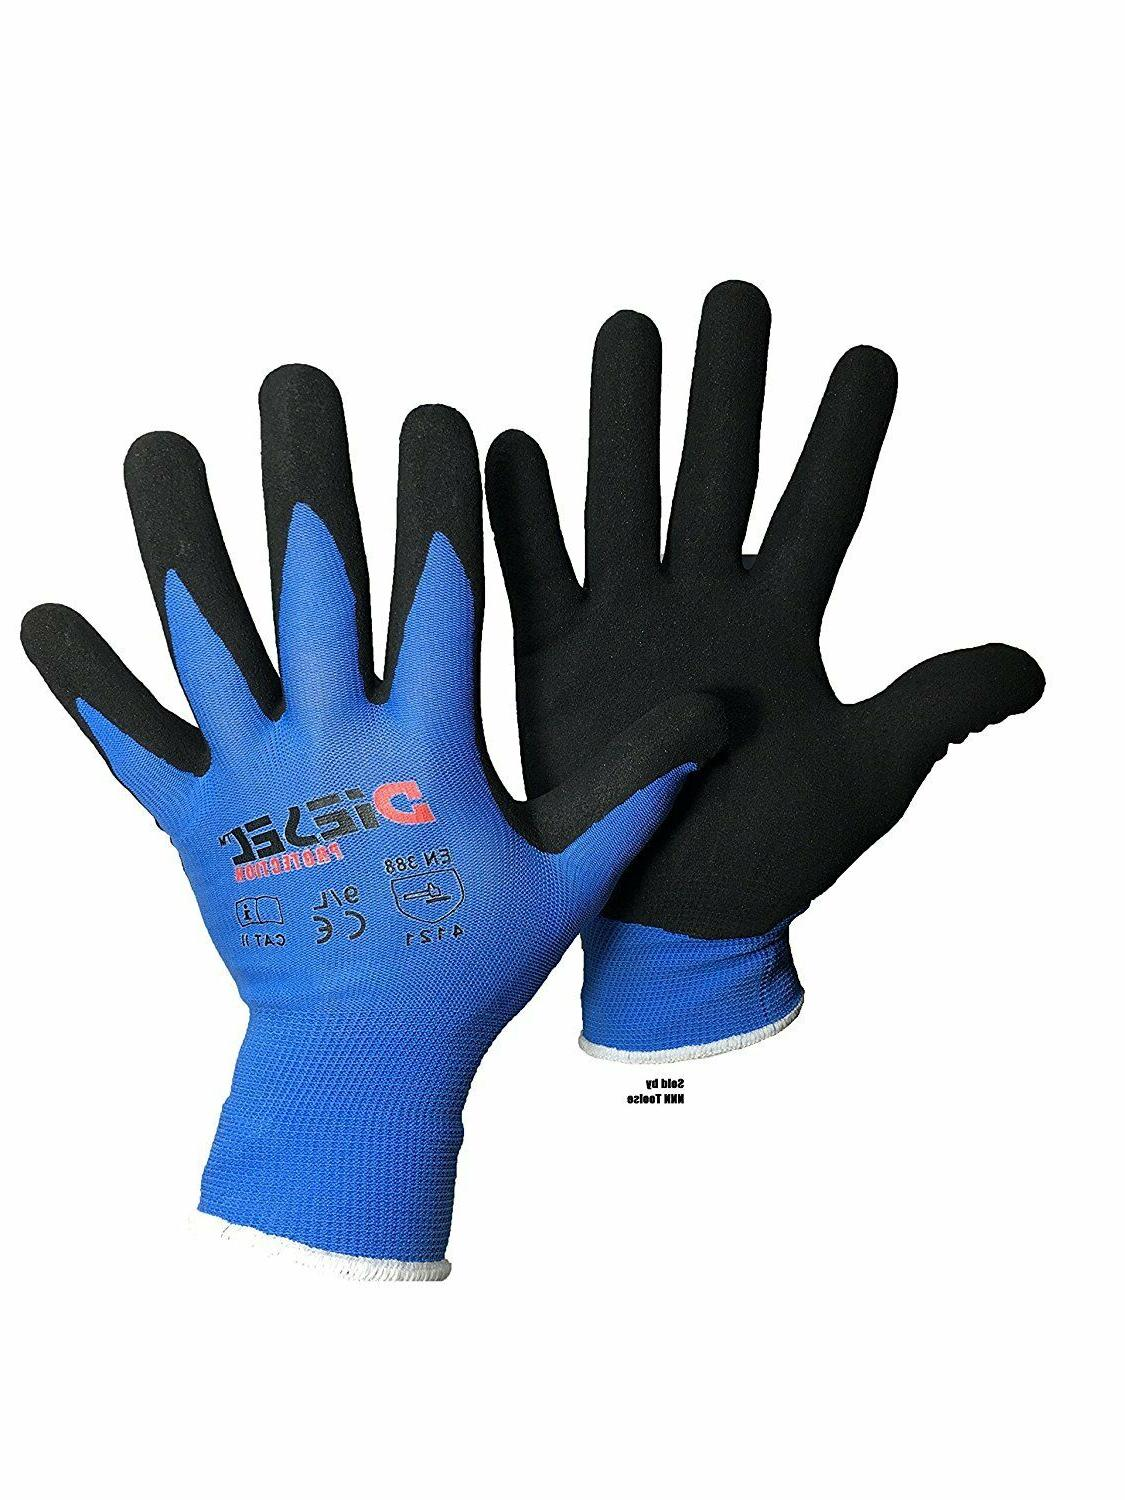 12 pair blue coated latex poly cotton